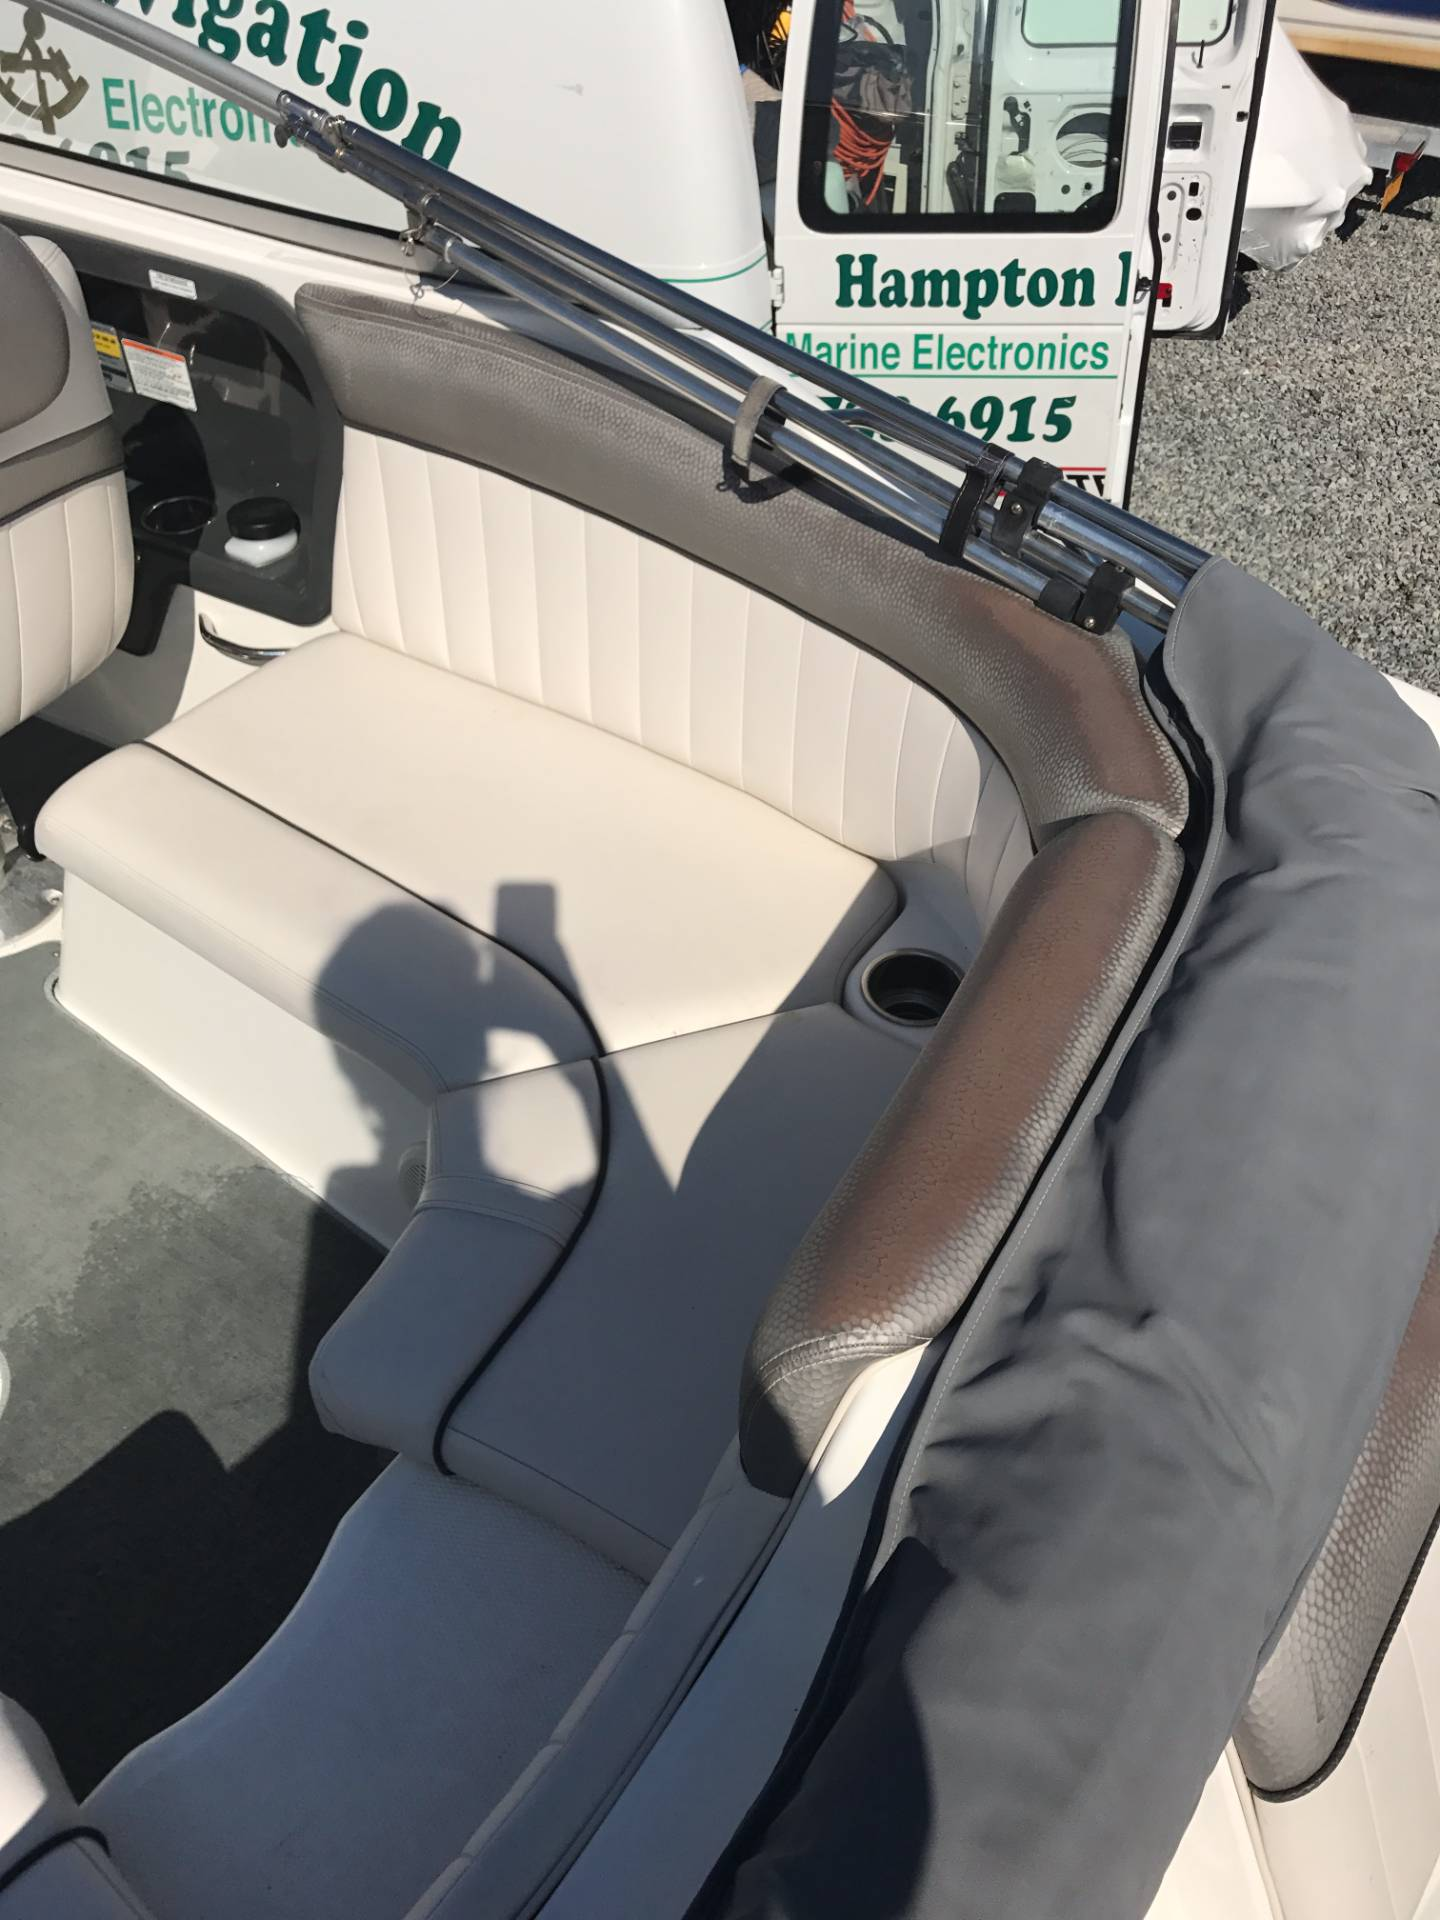 2008 Yamaha SX230 HO in Hampton Bays, New York